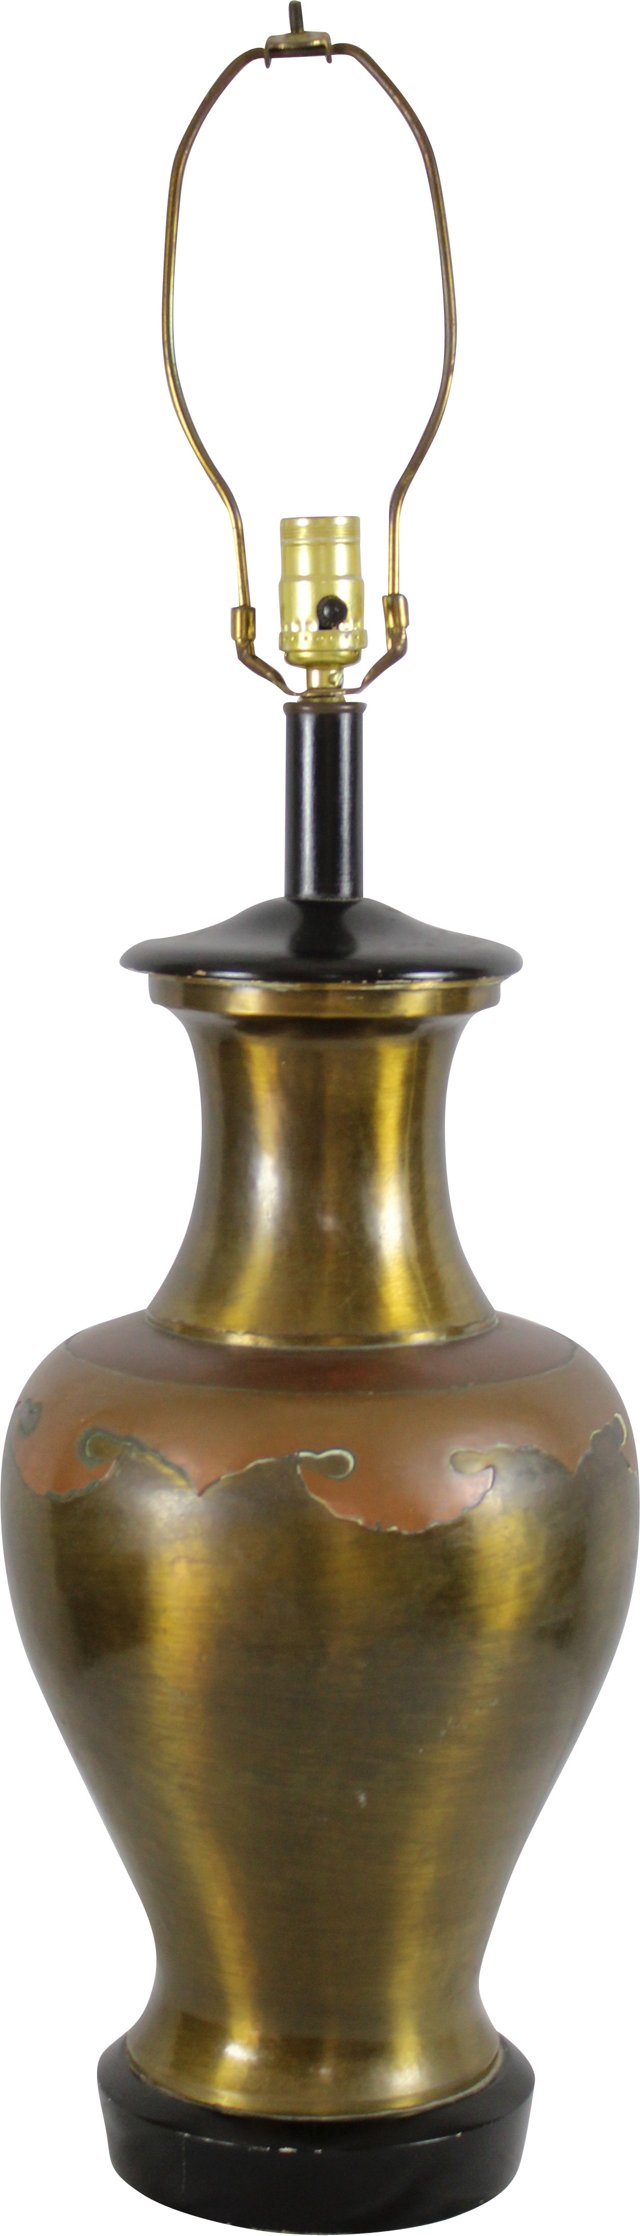 Brass & Copper Lamp